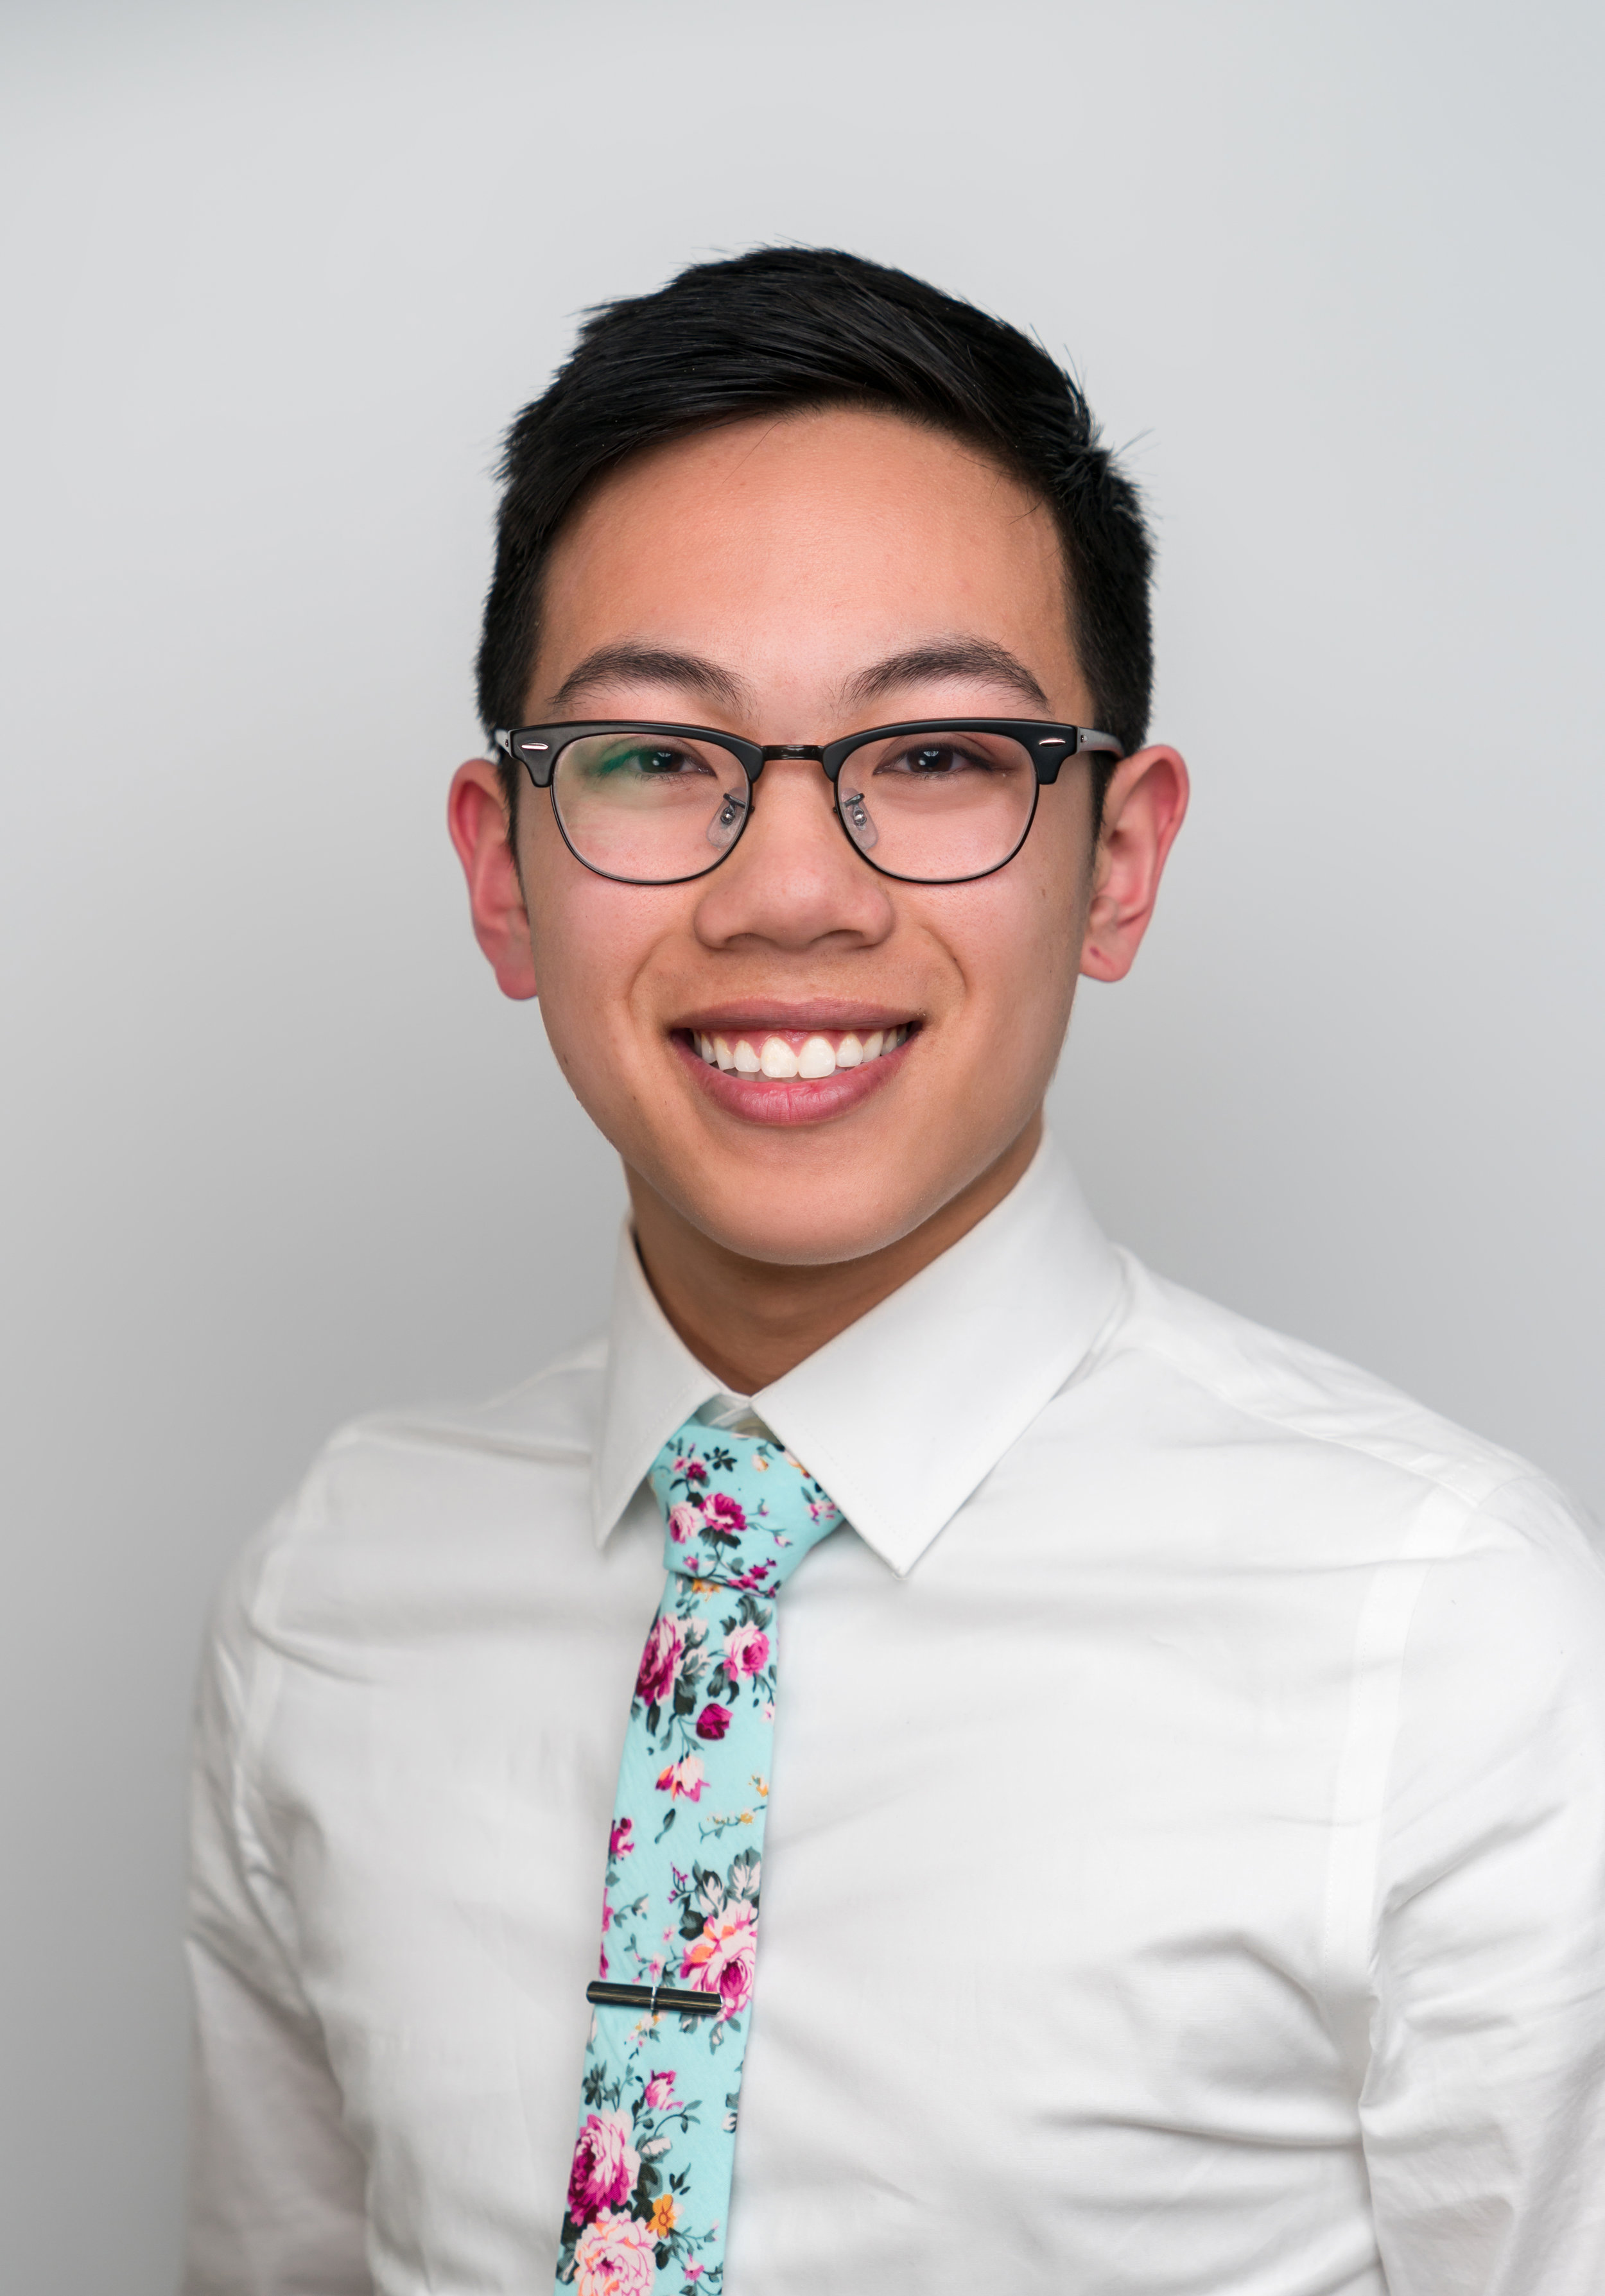 Daniel Vu   Major: Neurobiology, Physiology, and Behavior Career Goal: Gastroenterologist/GI Surgeon